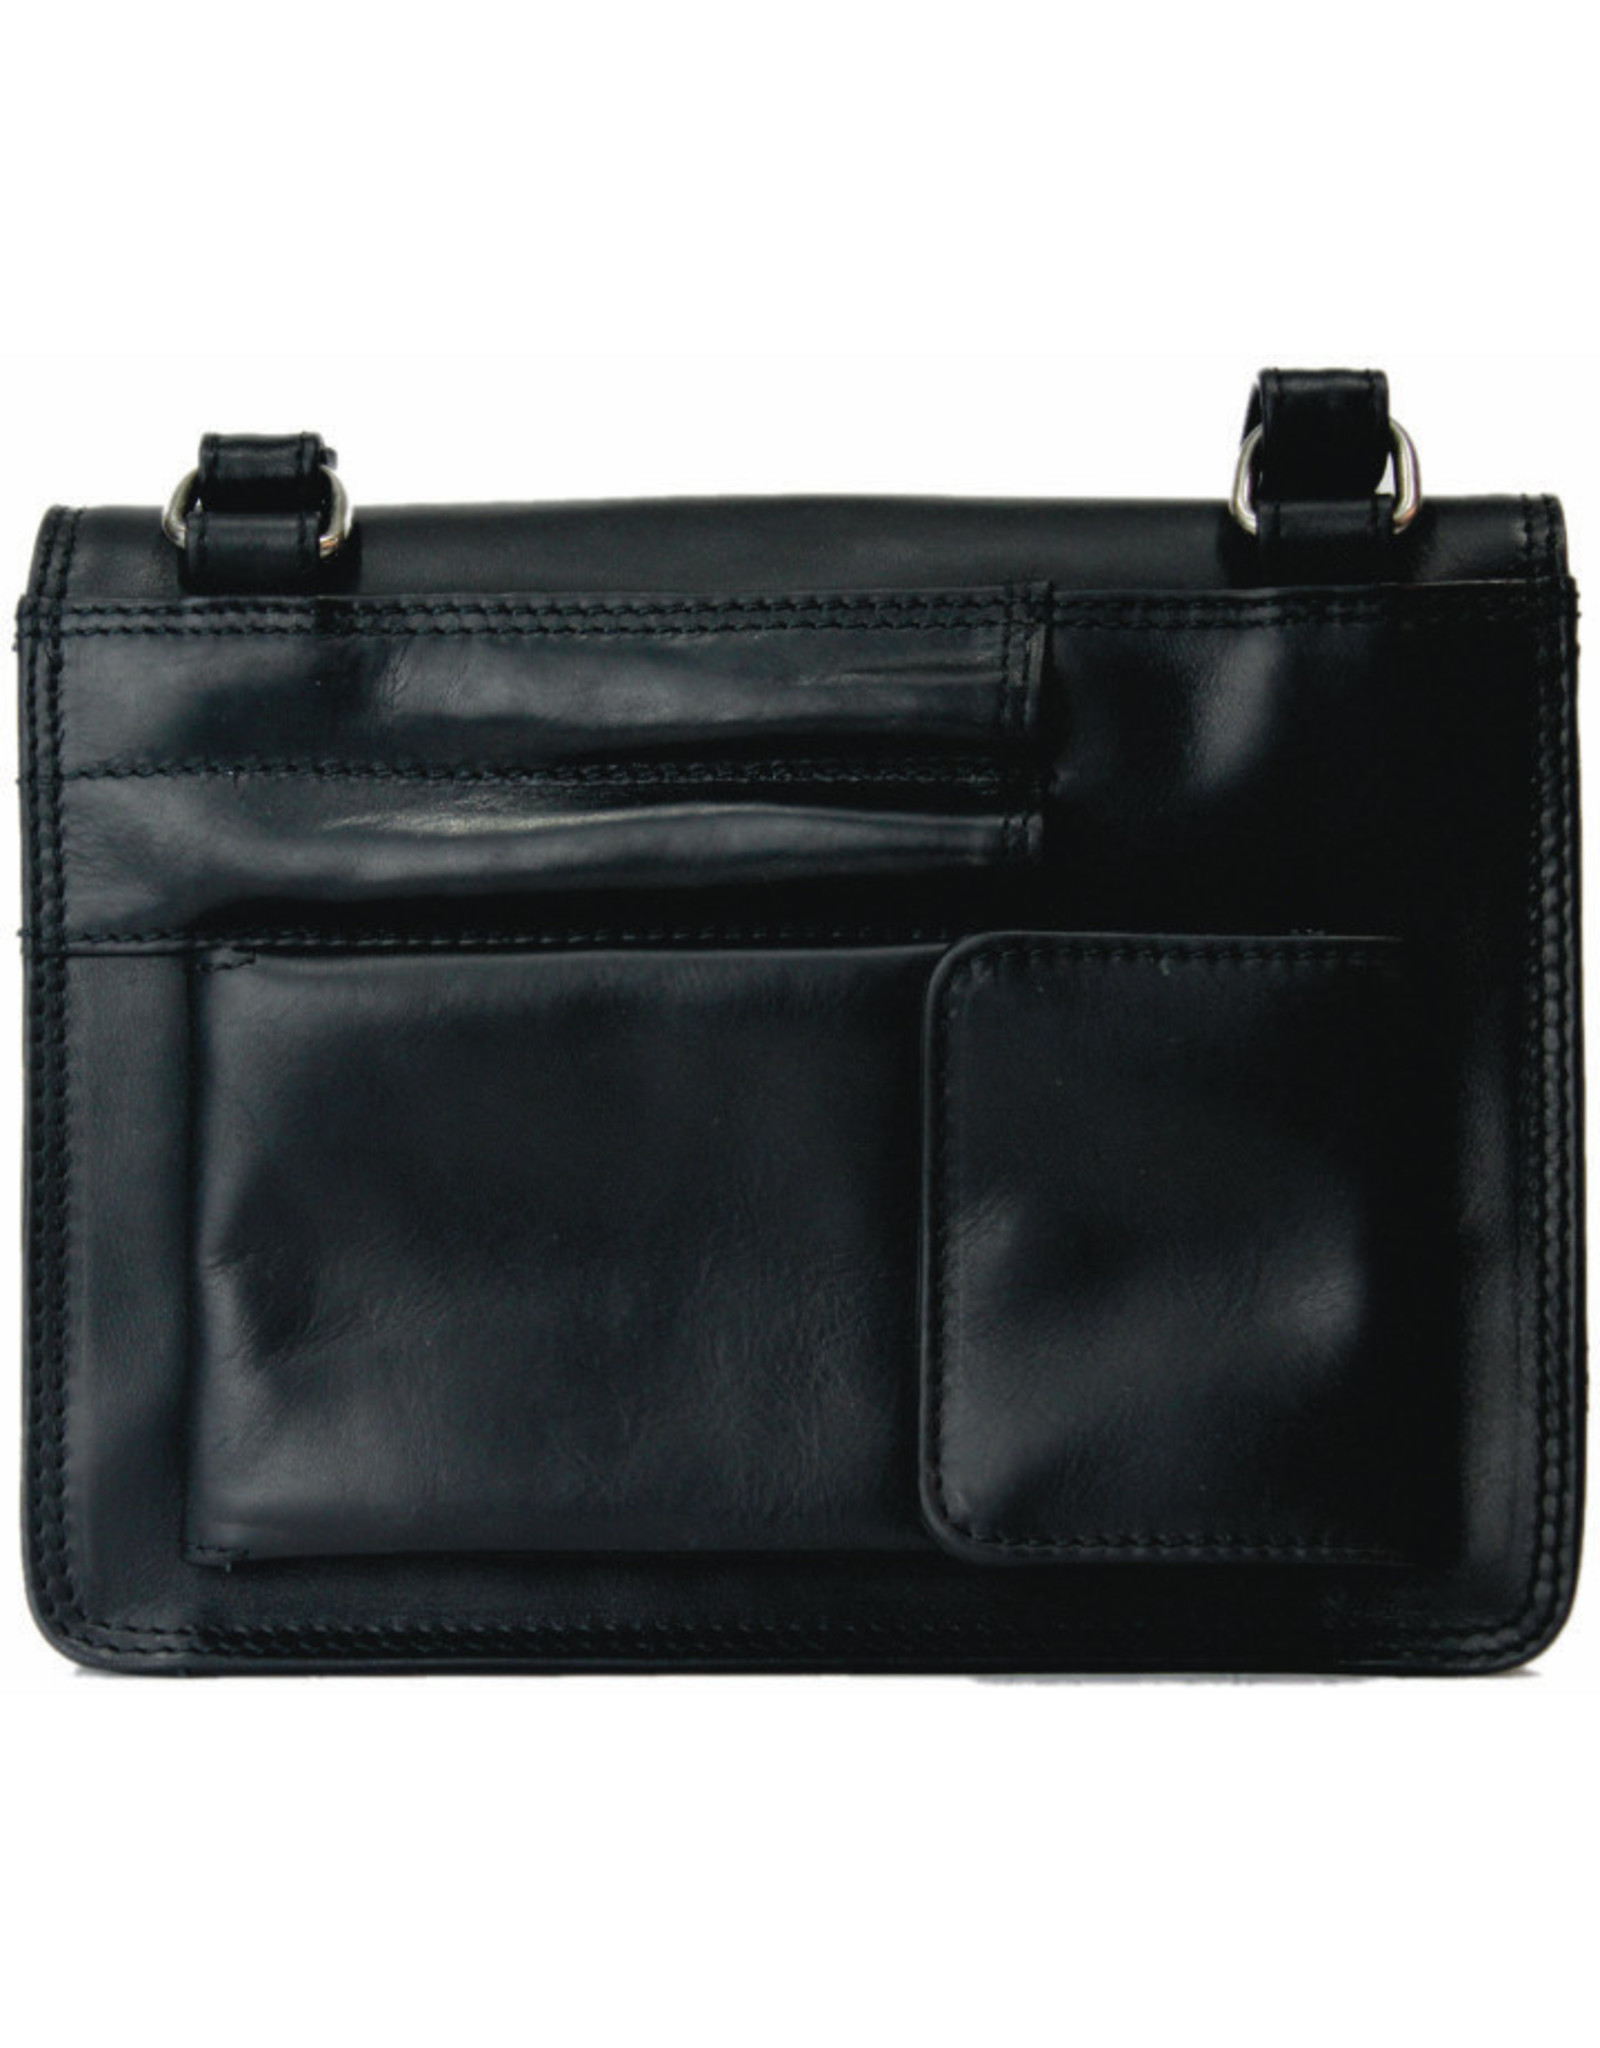 "Rugged Earth Rugged Earth Sac à Main 188013 Black W 9""*H 7""*D 2"""